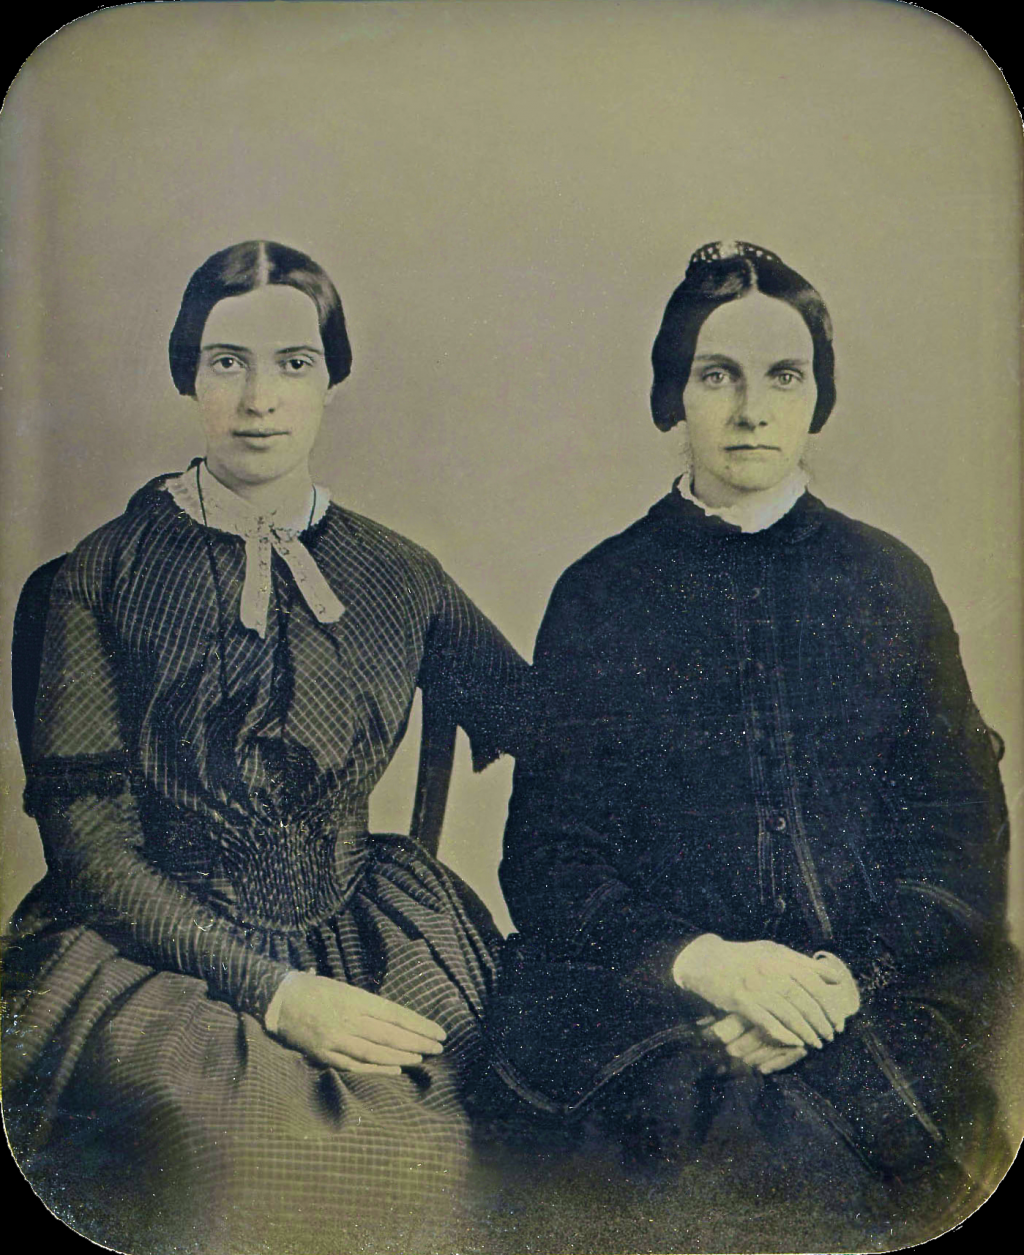 If the woman on the left is in fact Emily Dickinson, then this daguerreotype captures her at the height of her powers